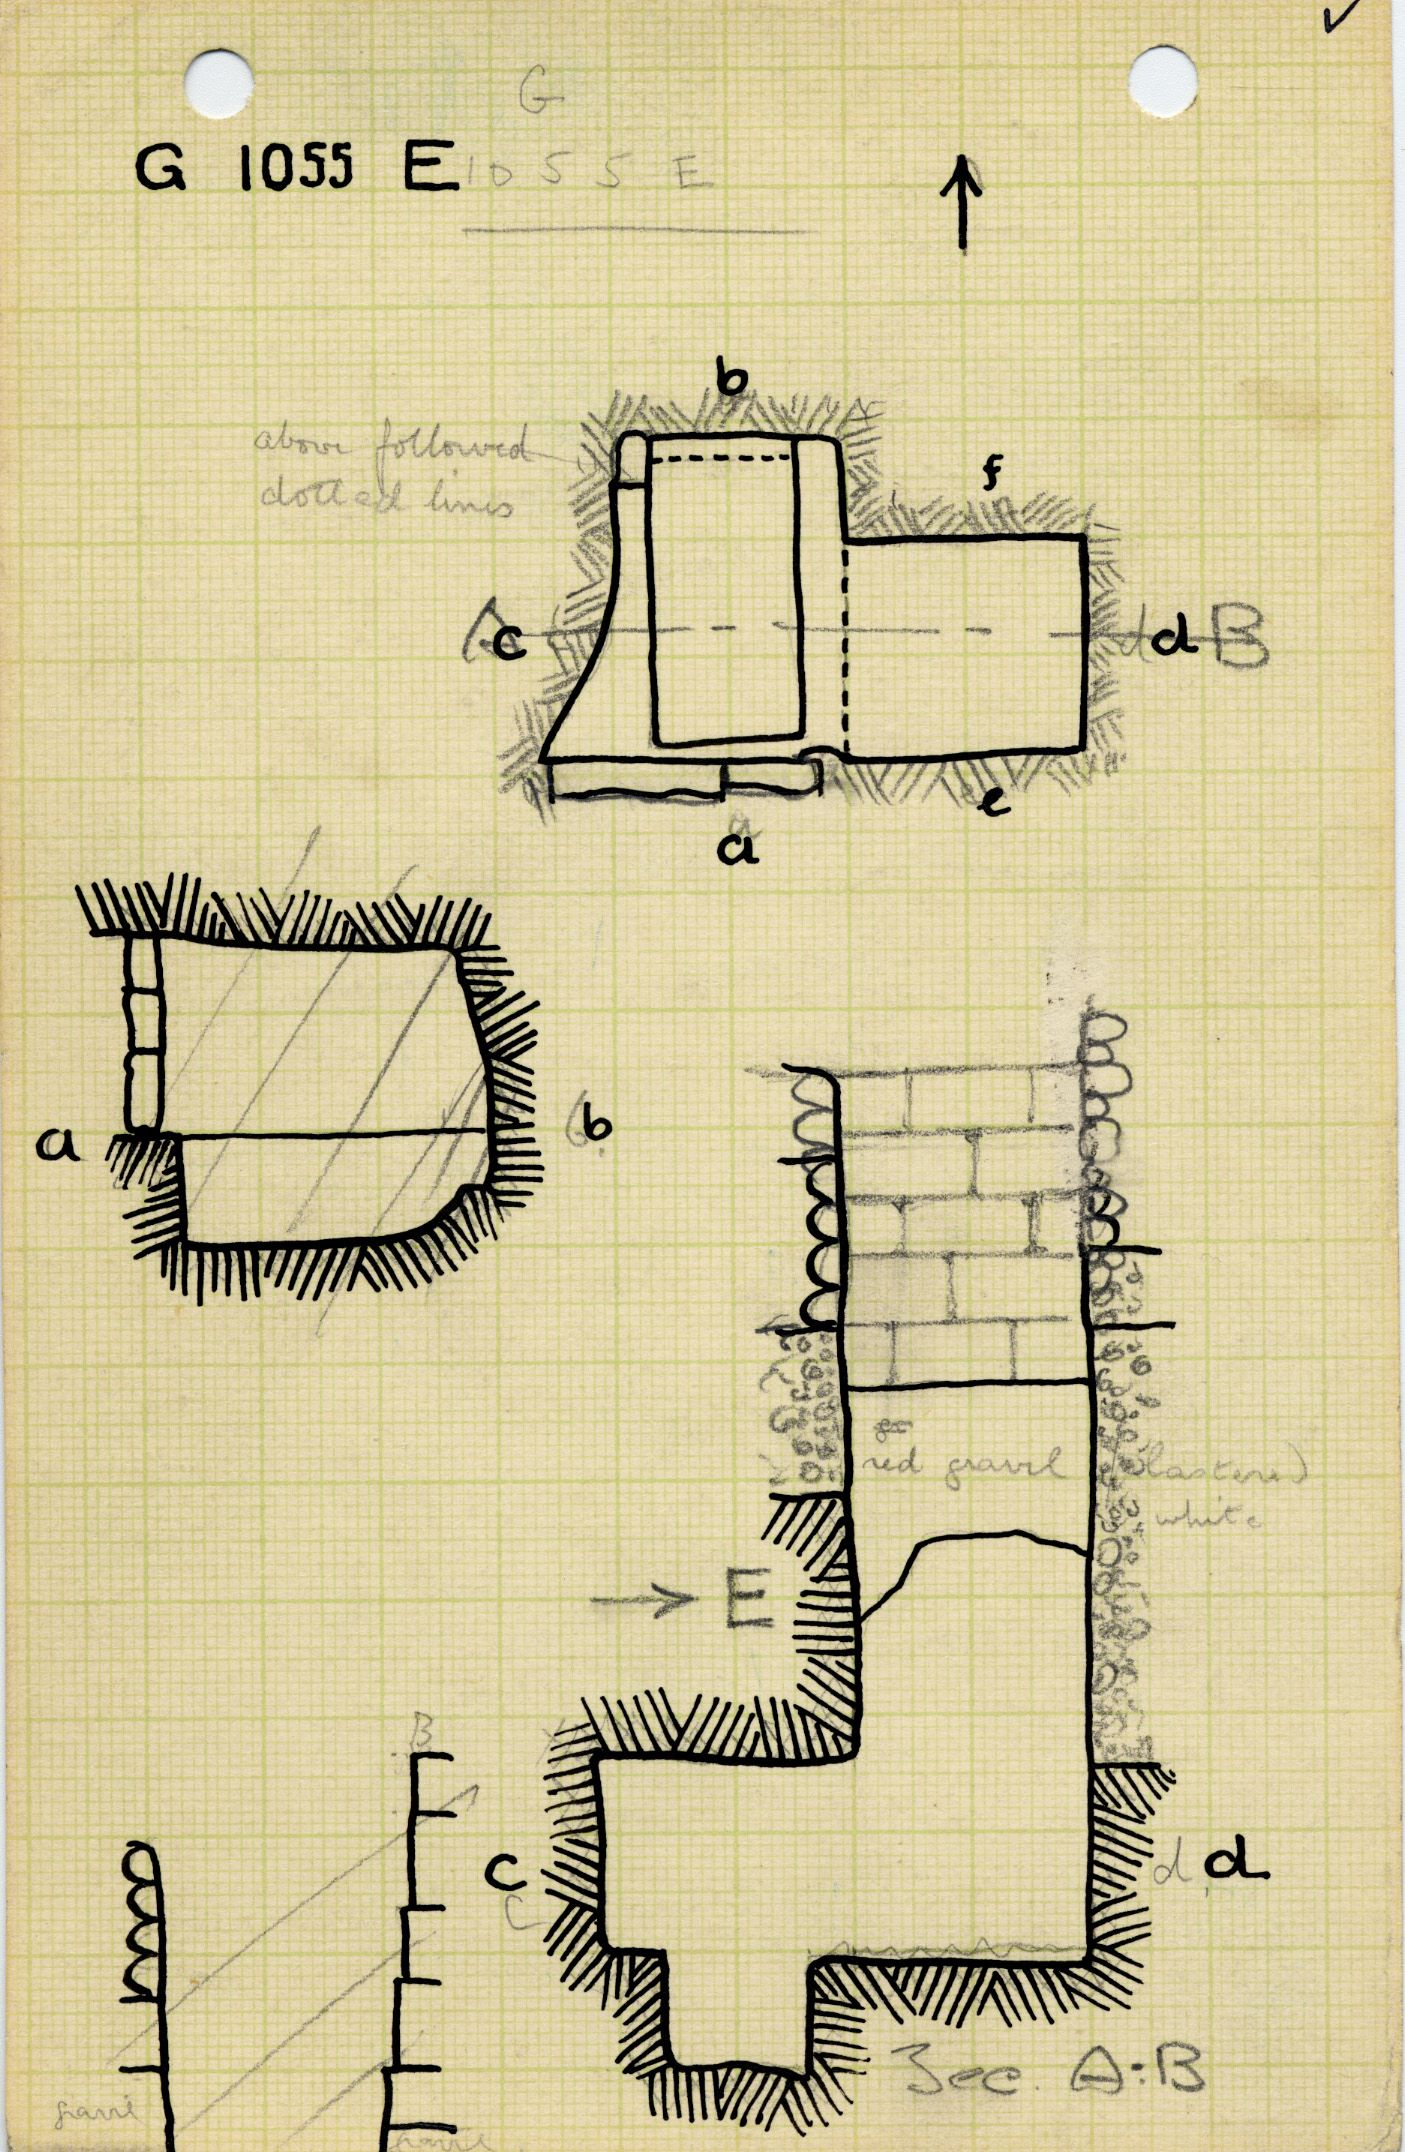 Maps and plans: G 1055, Shaft E